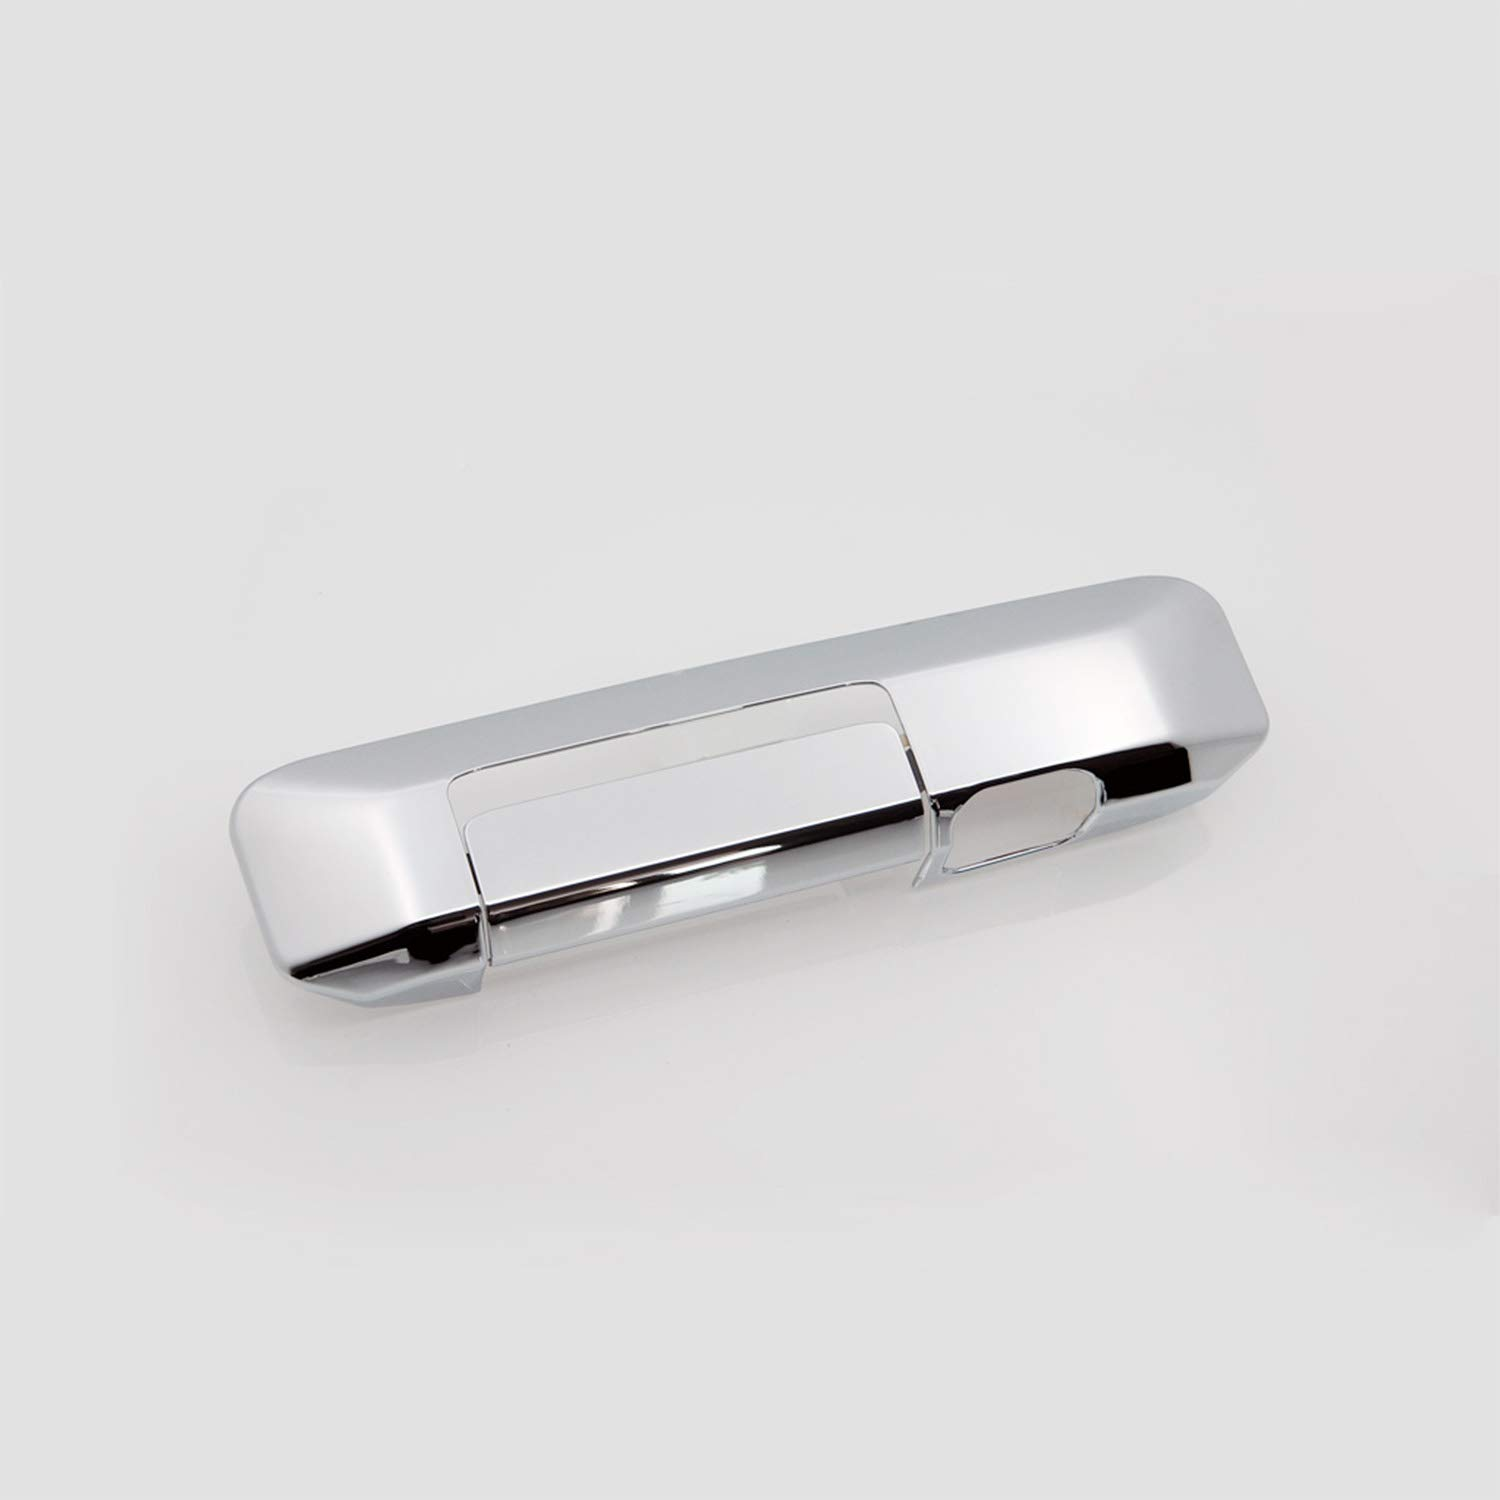 EAG Tailgate Handle Cover Triple Chrome Plated ABS with Camera Hole Fit for 05-15 Toyota Tacoma